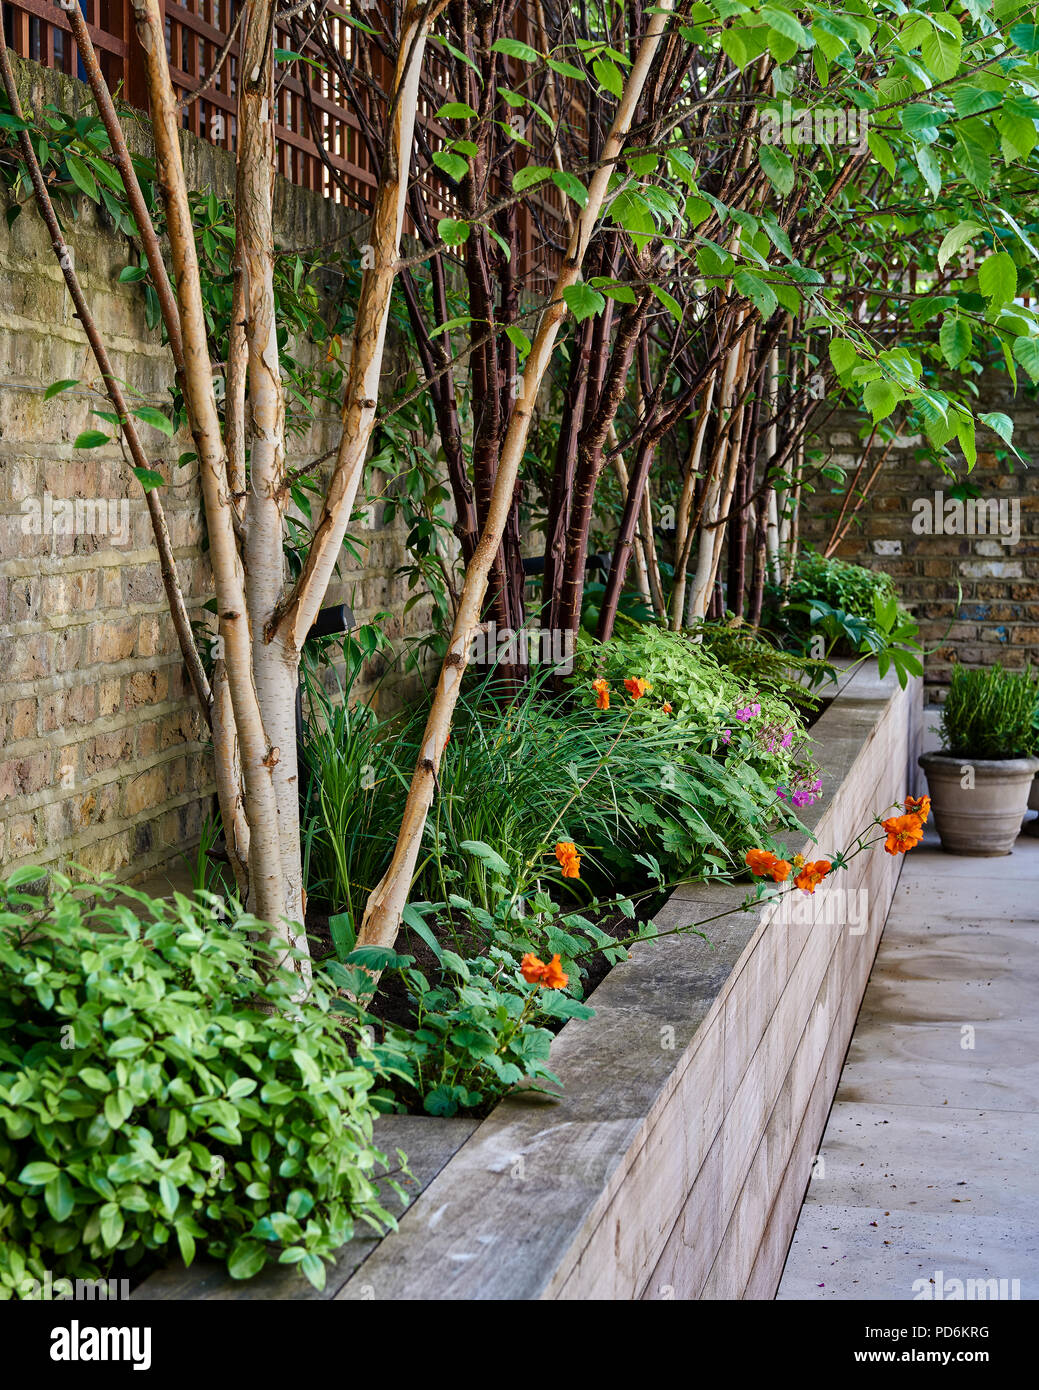 Raised flowerbeds in courtyard garden of Victorian London home - Stock Image